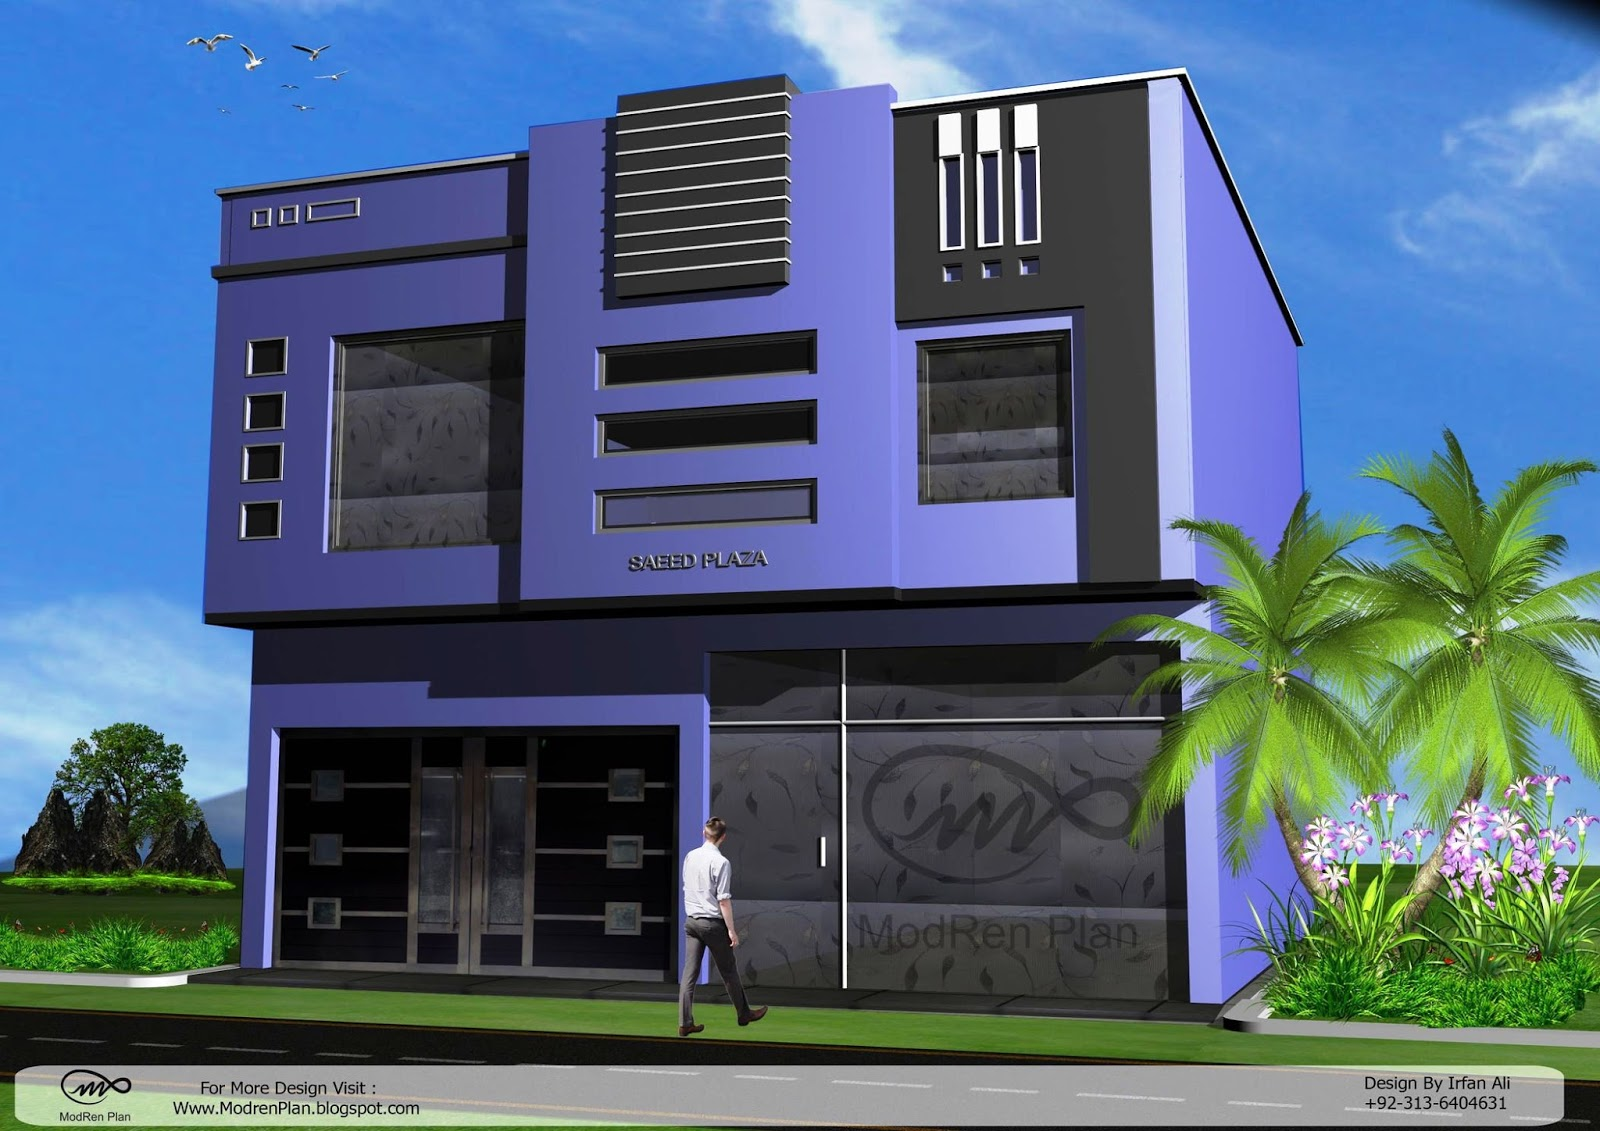 Modern commercial building designs and plaza front elevation for Elevation plans for buildings